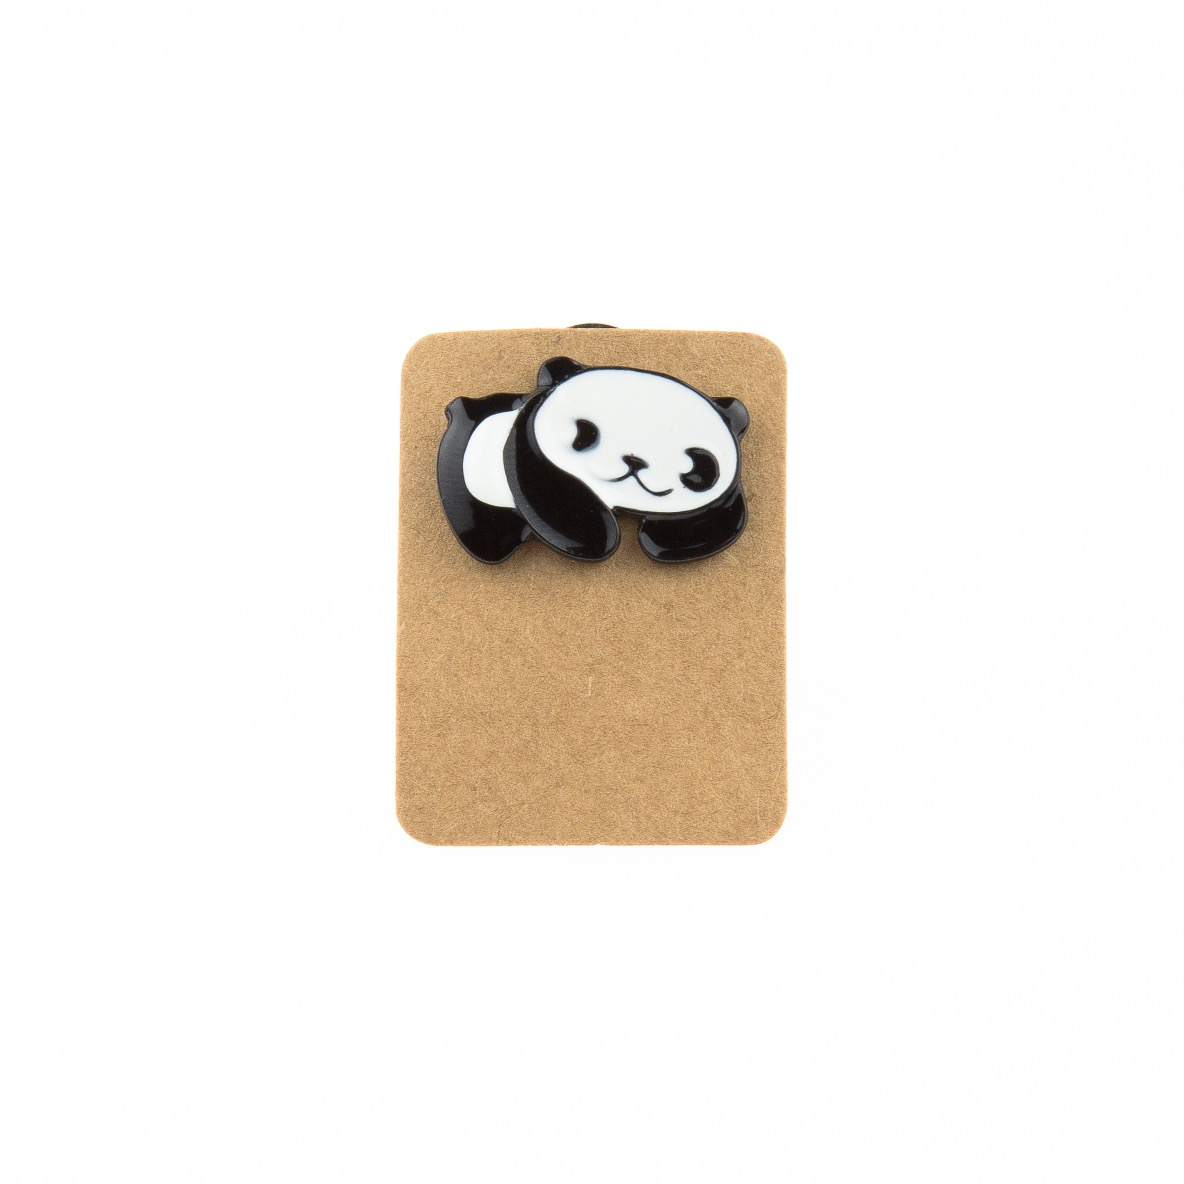 Metal Panda Enamel Pin Badge